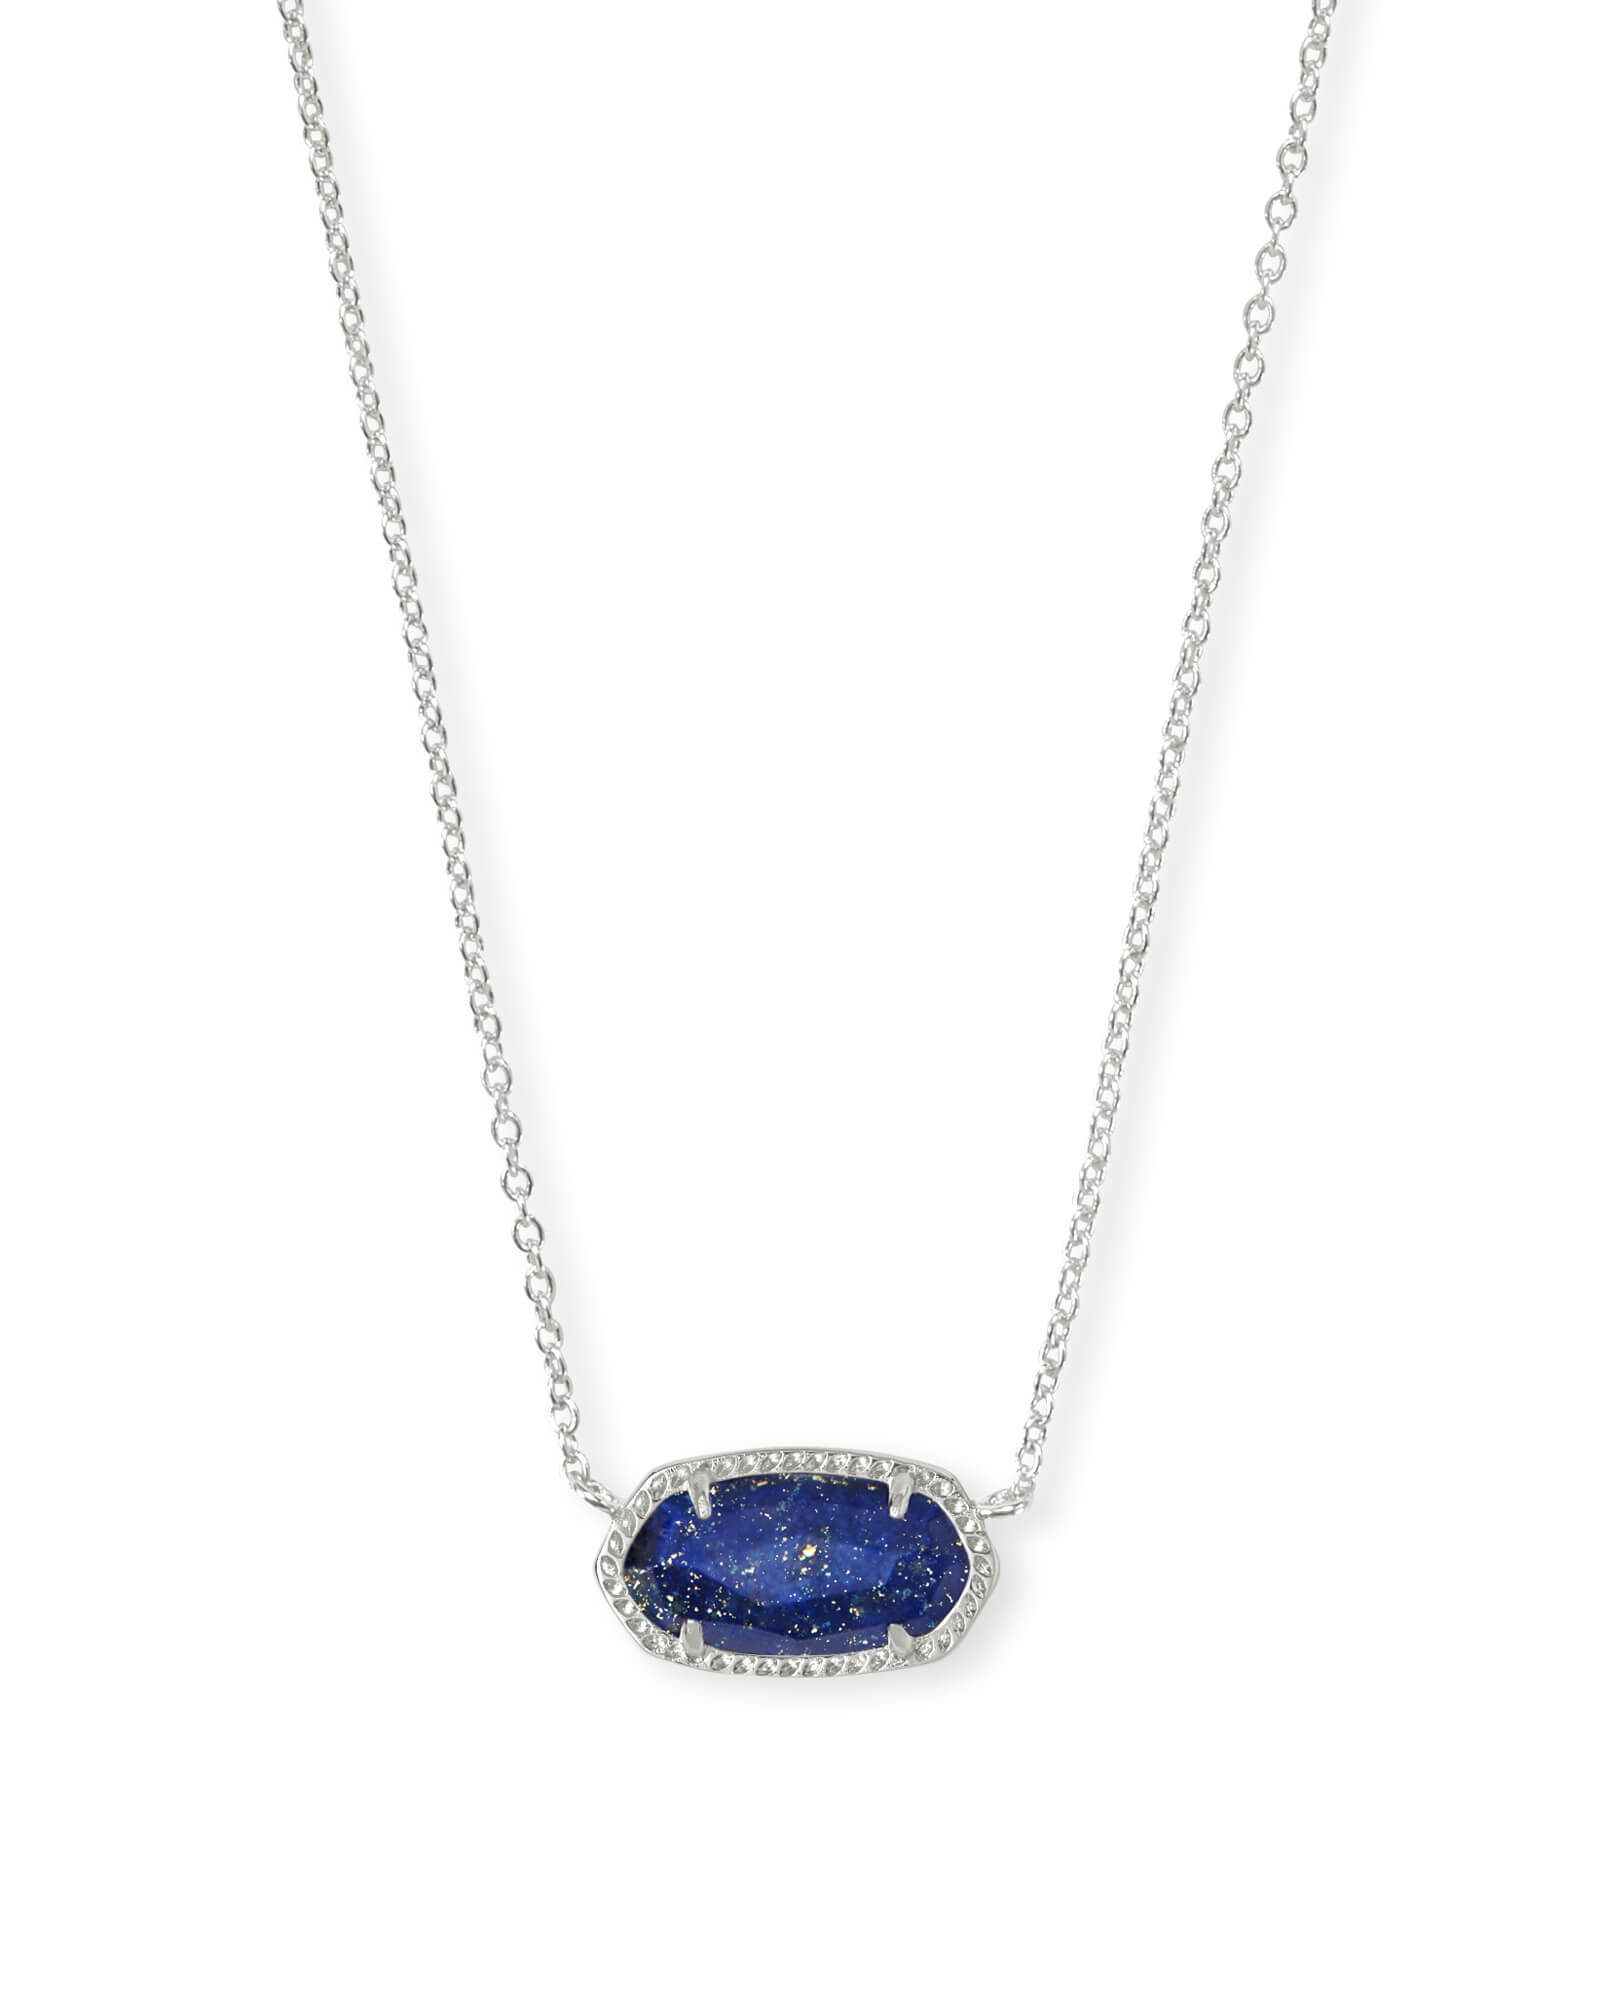 Elisa Bright Silver Pendant Necklace in Blue Lapis